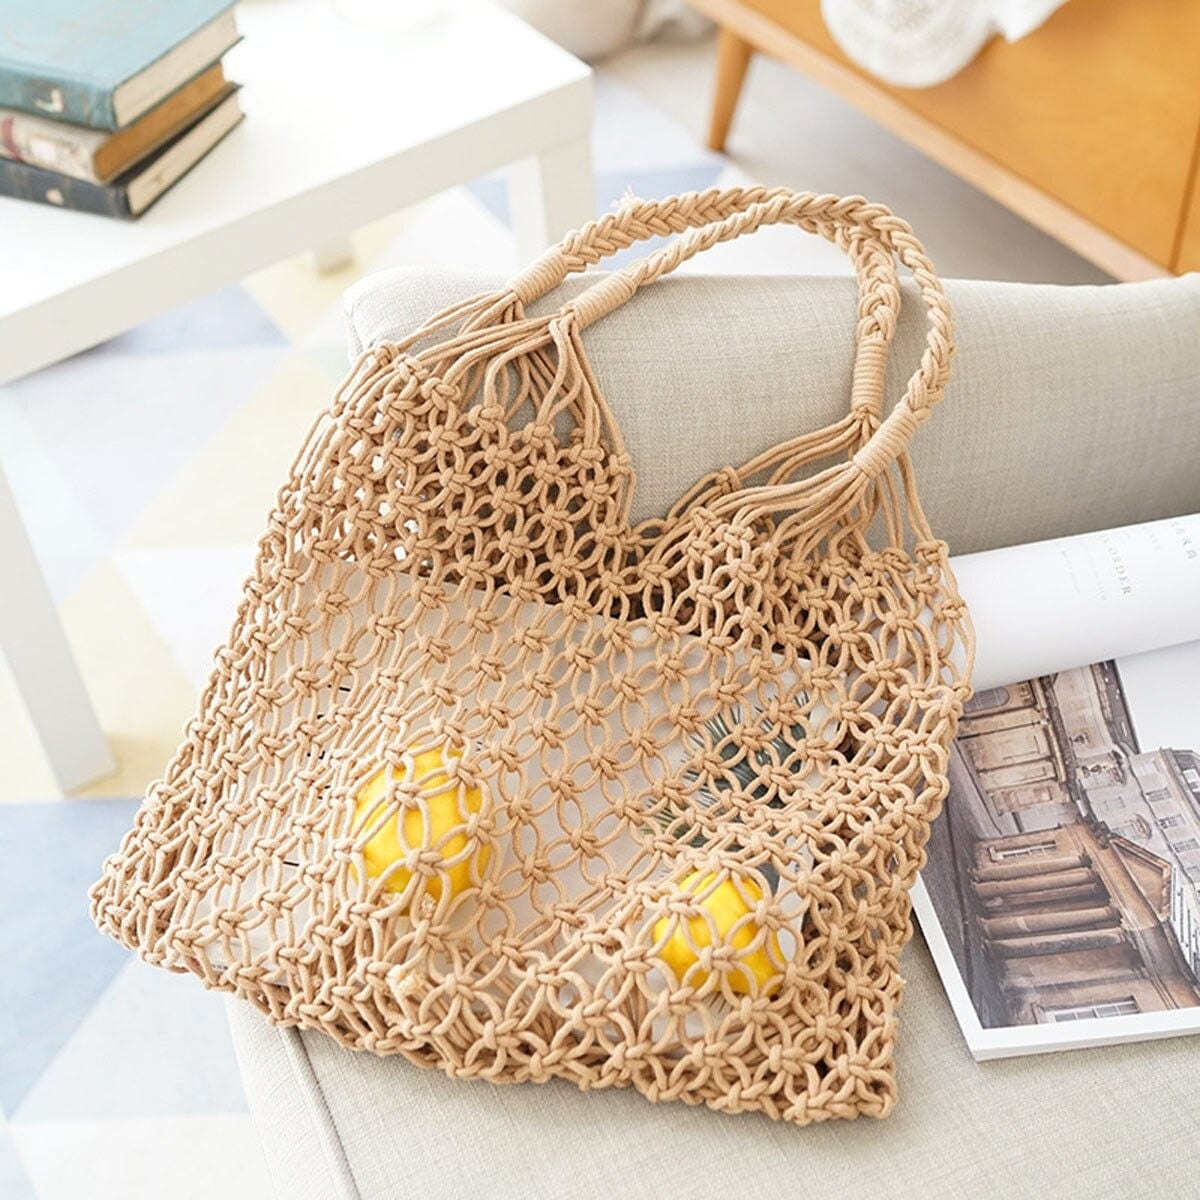 How many rattan tote bags made in bali top